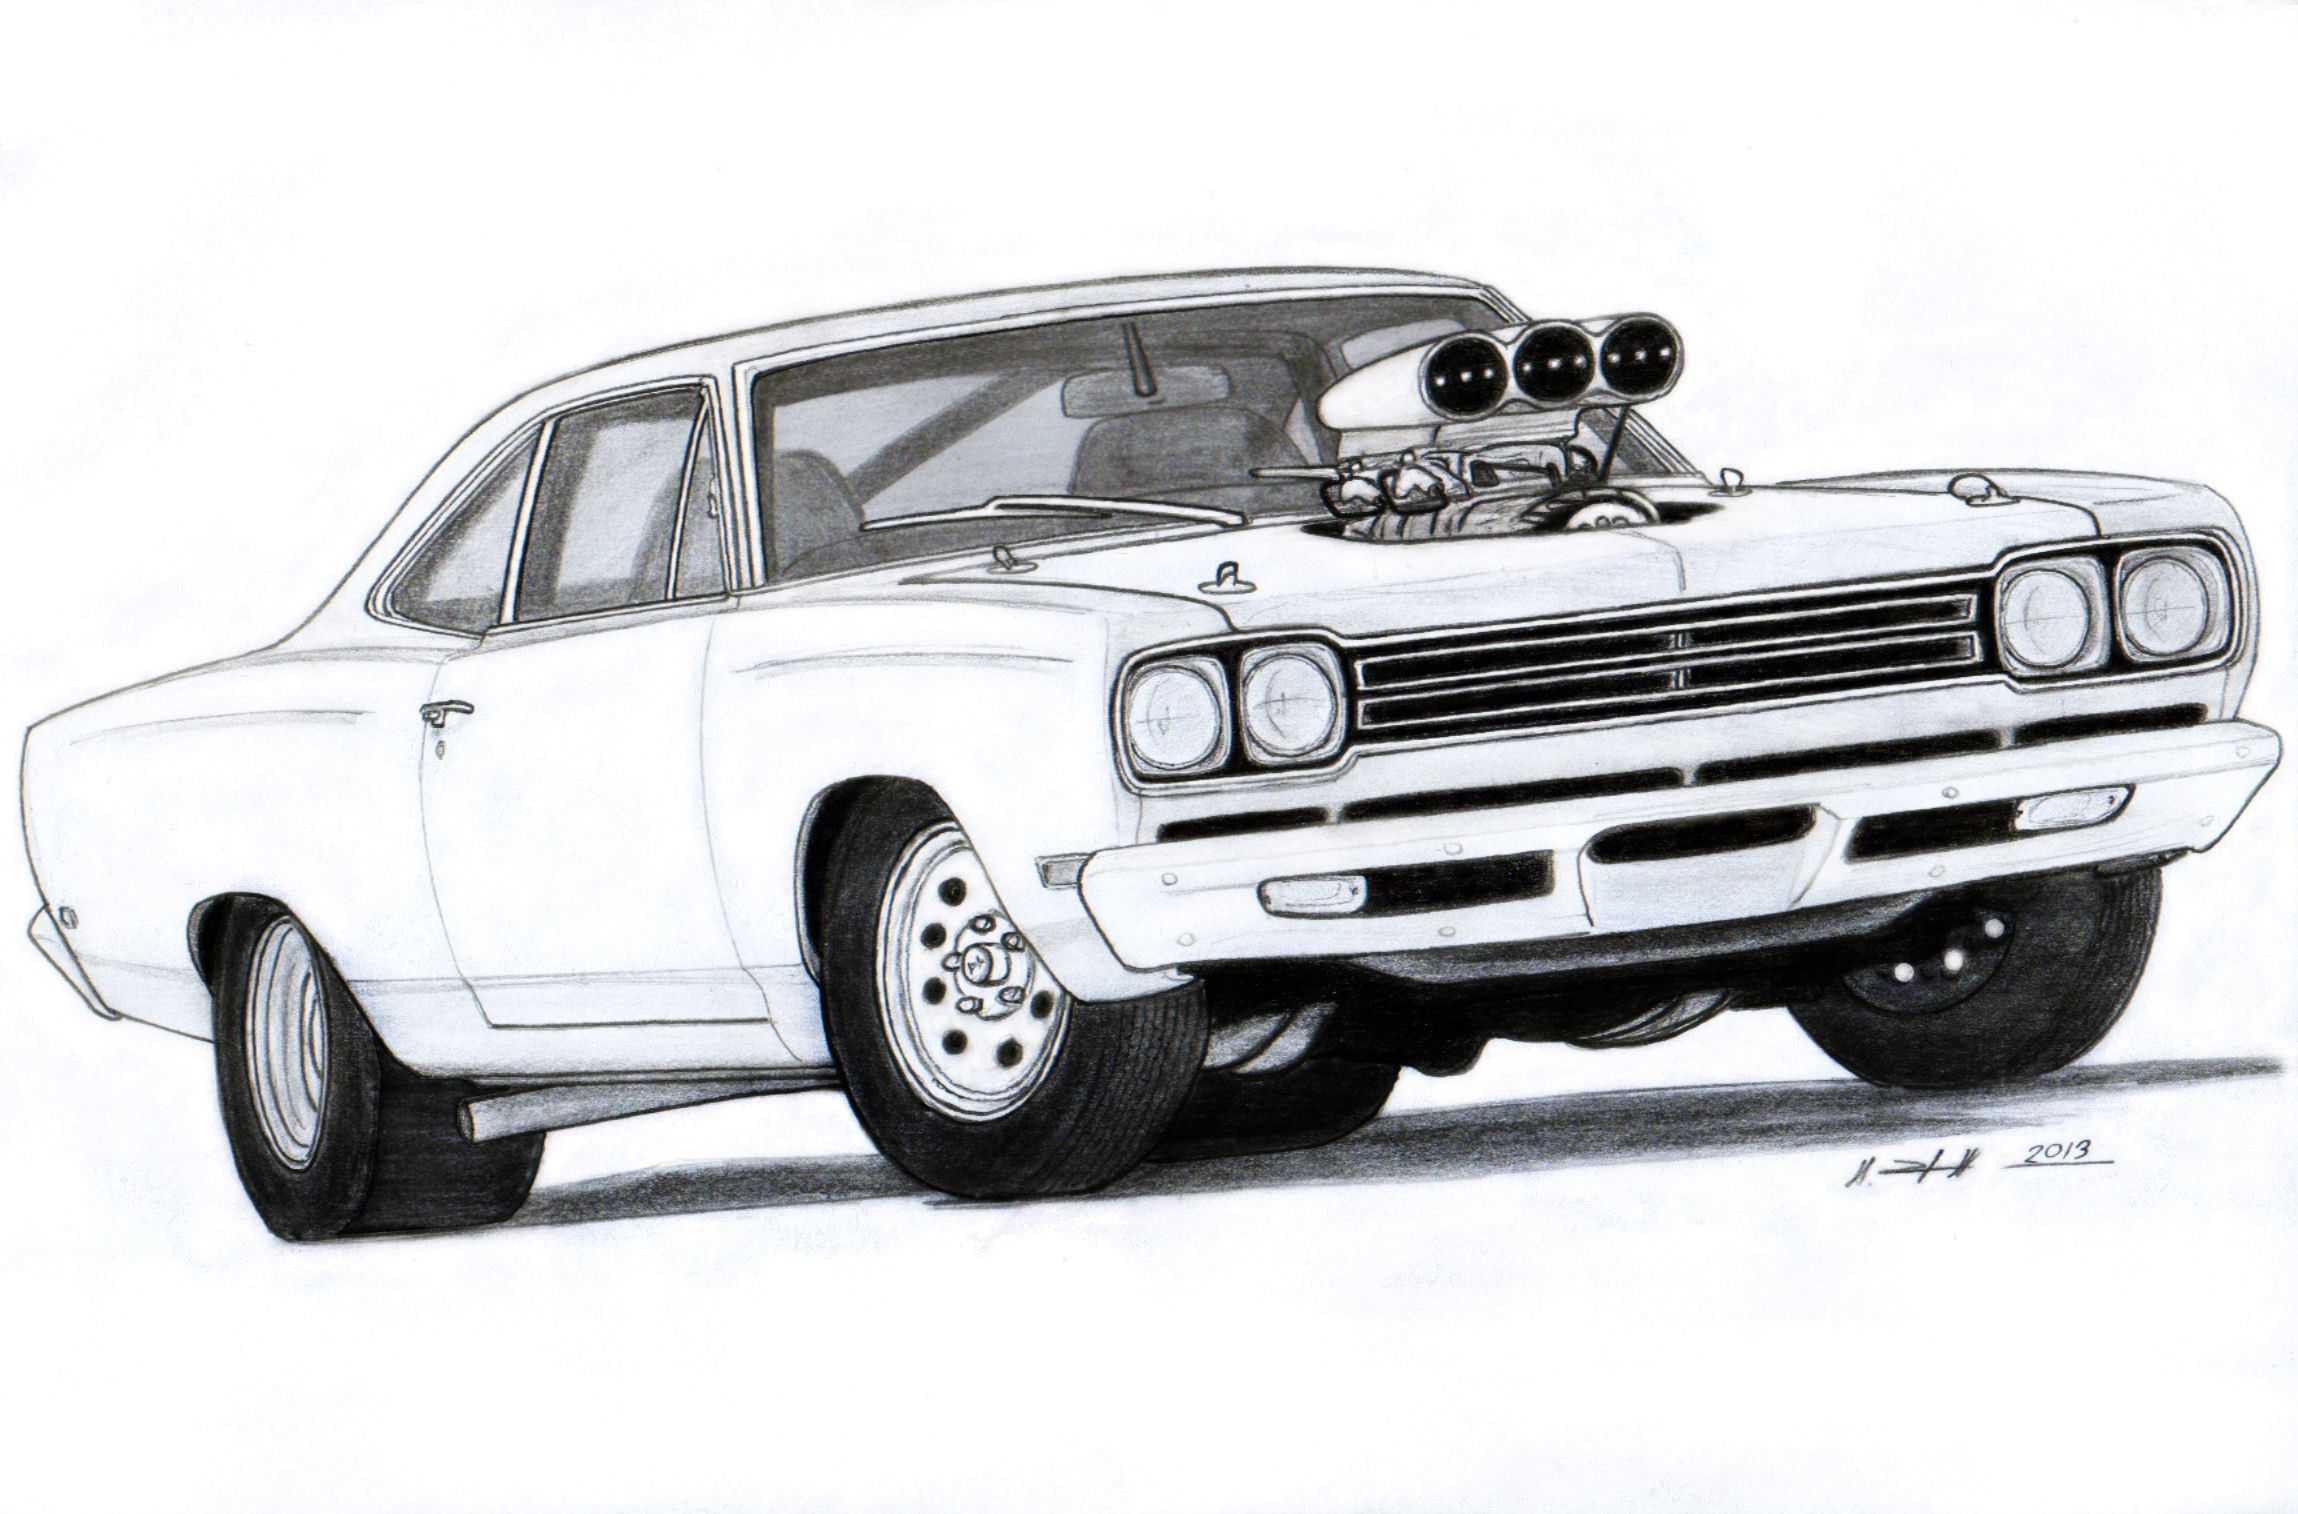 Pencil Art Of Fast And Furious Movie Cars Car Drawings Cool Car